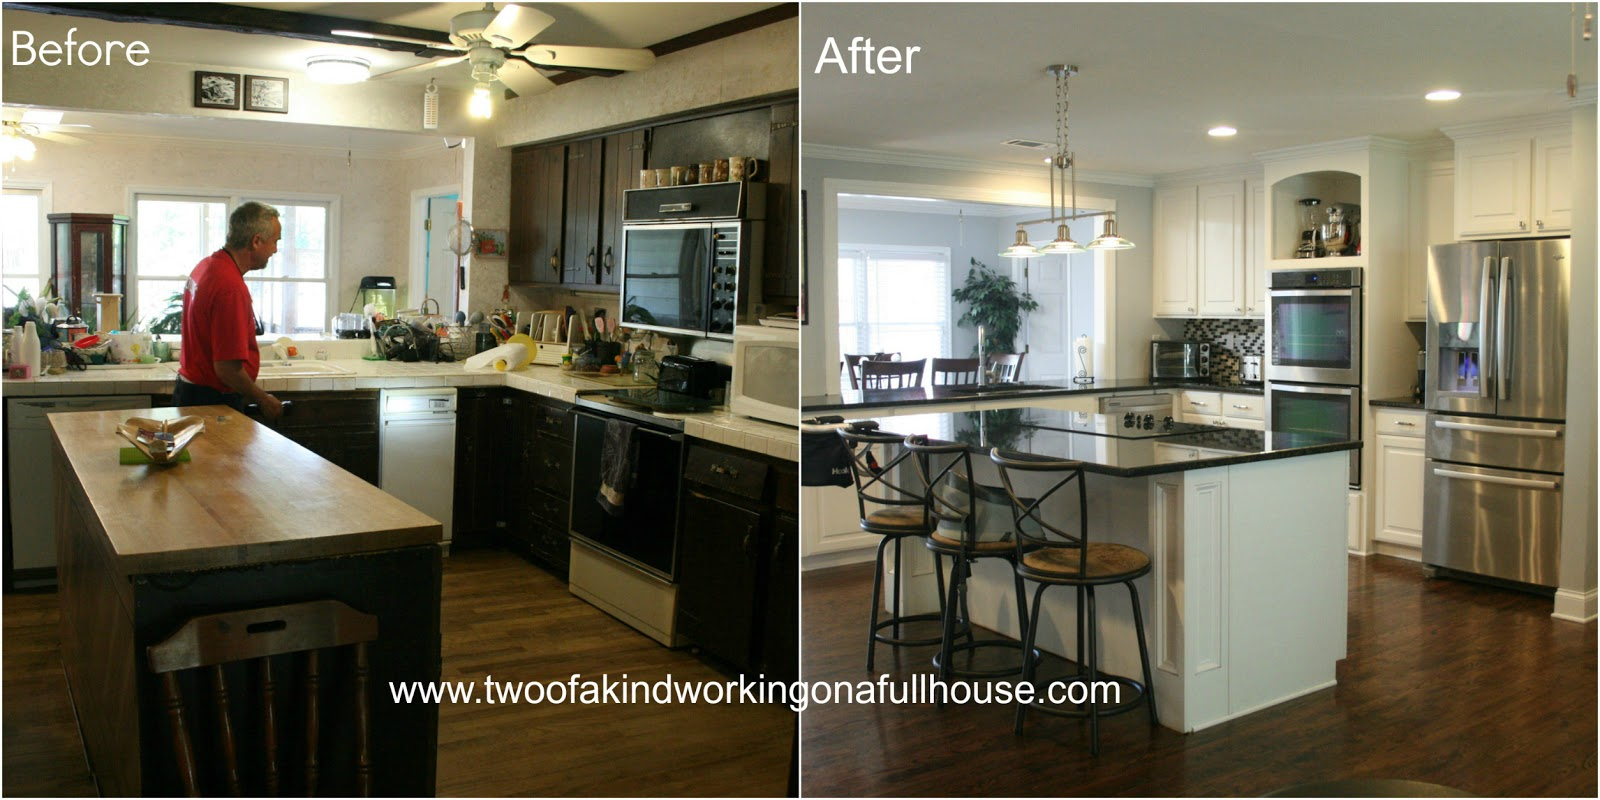 Wordless wednesday before after kitchen remodel pictures for Kitchen remodel before after